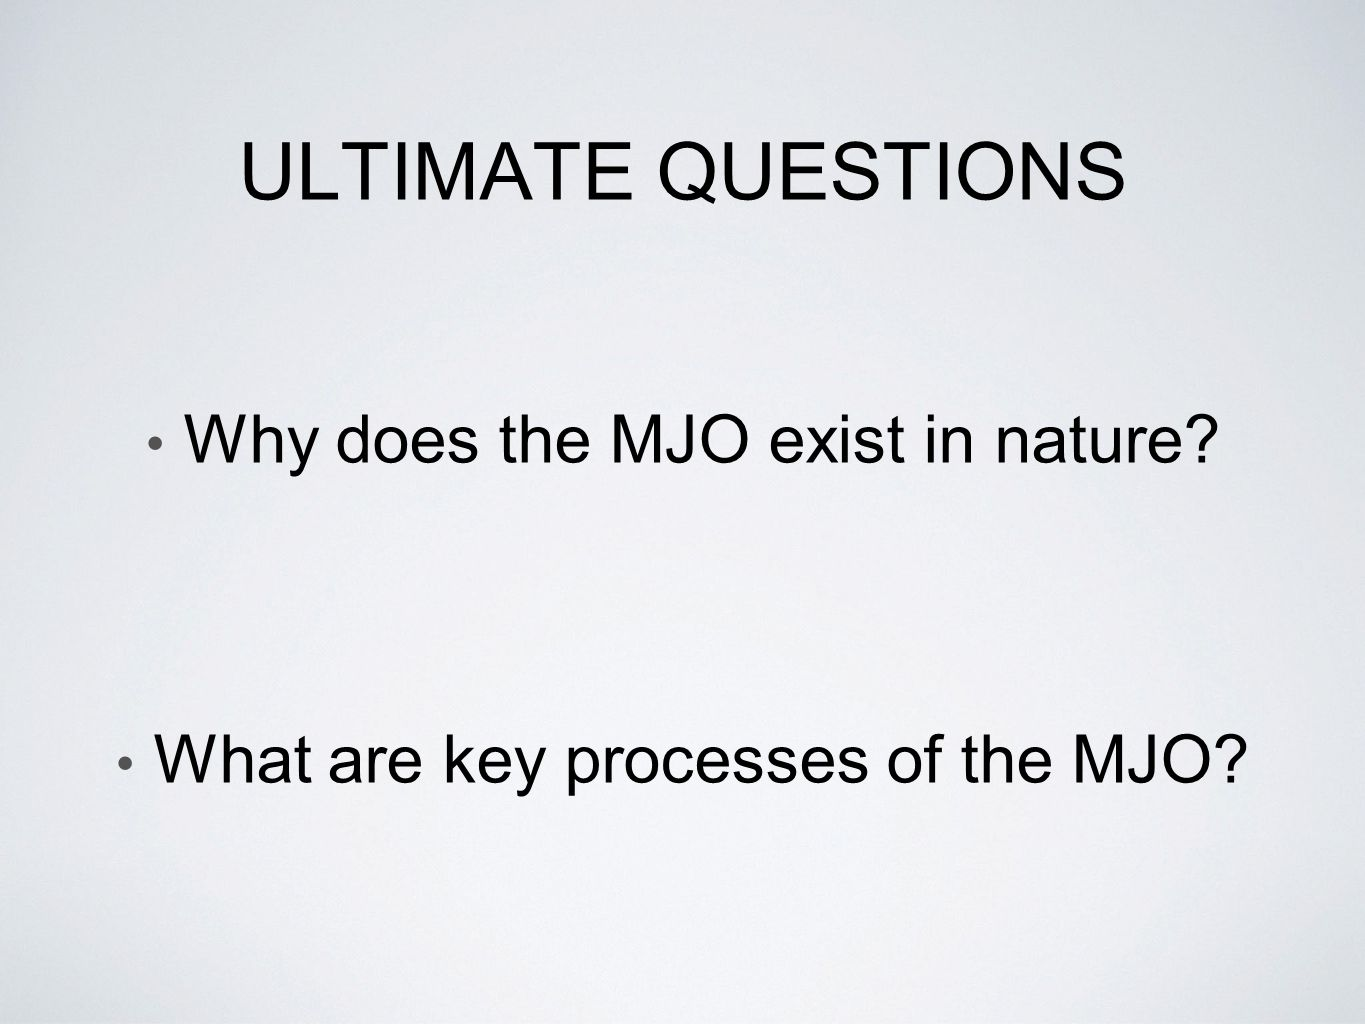 ULTIMATE QUESTIONS Why does the MJO exist in nature? What are key processes of the MJO?